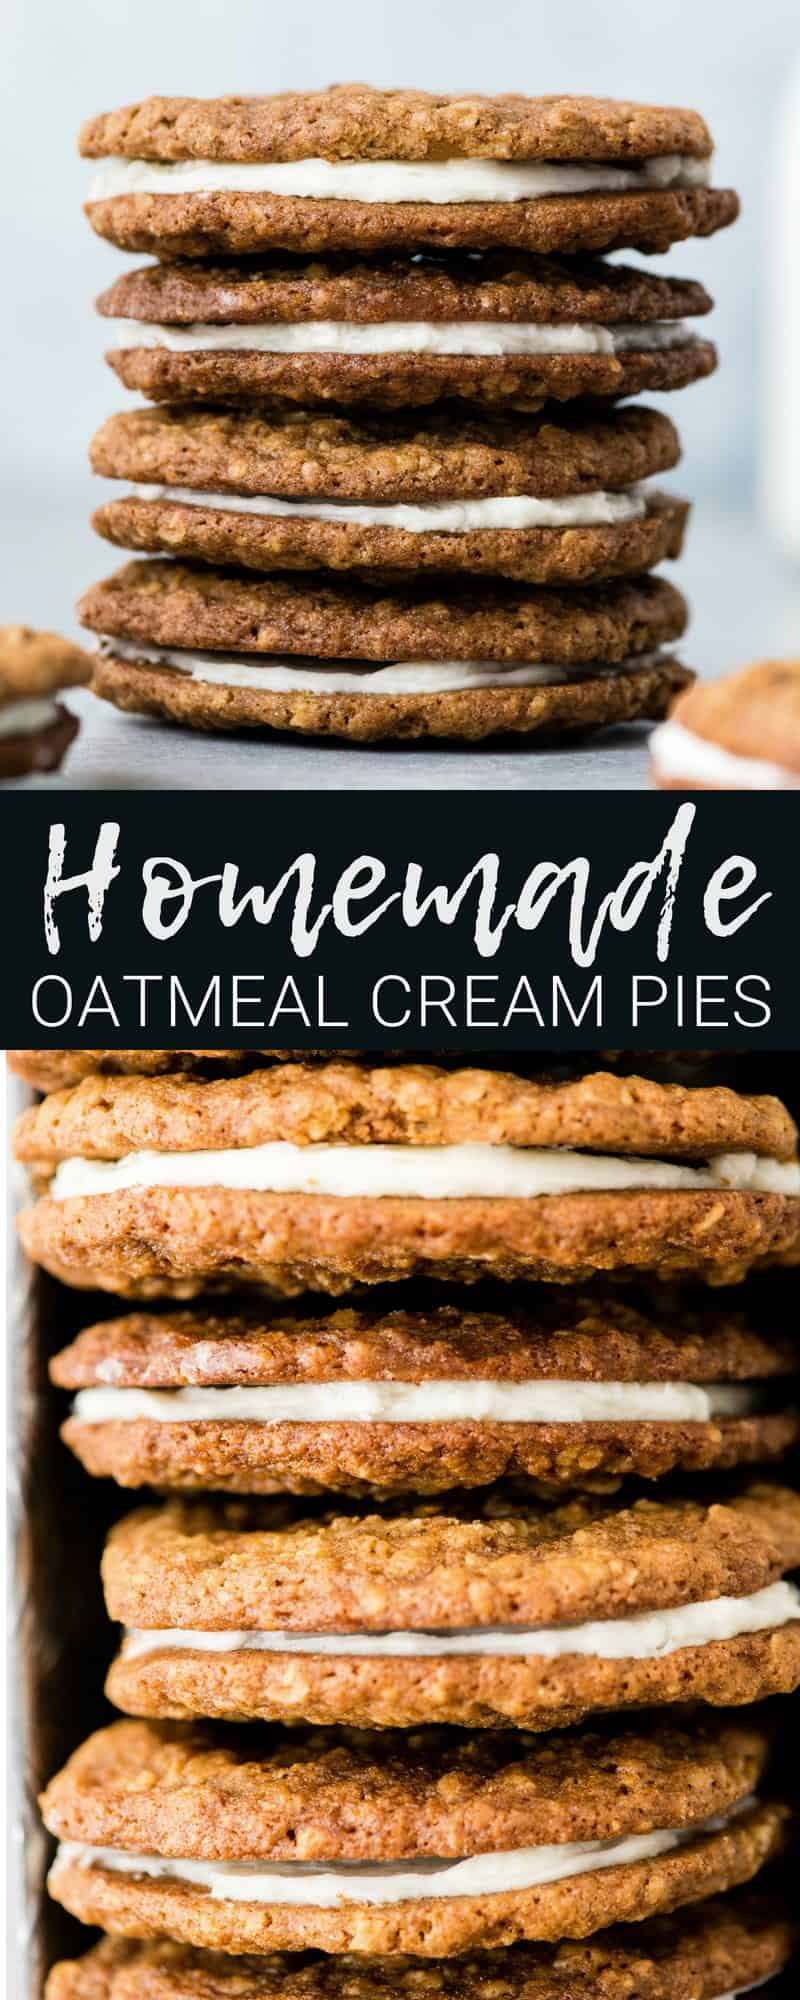 These Homemade Oatmeal Cream Pies are so much better than their store-bought counterparts and are made completely from scratch! Plus, they can be made ahead and are freezer-friendly! An absolutely delicious dessert to feed a crowd! #homemade #oatmealcreampies #oatmealcookies #cookies #dessert #freezerfriendly